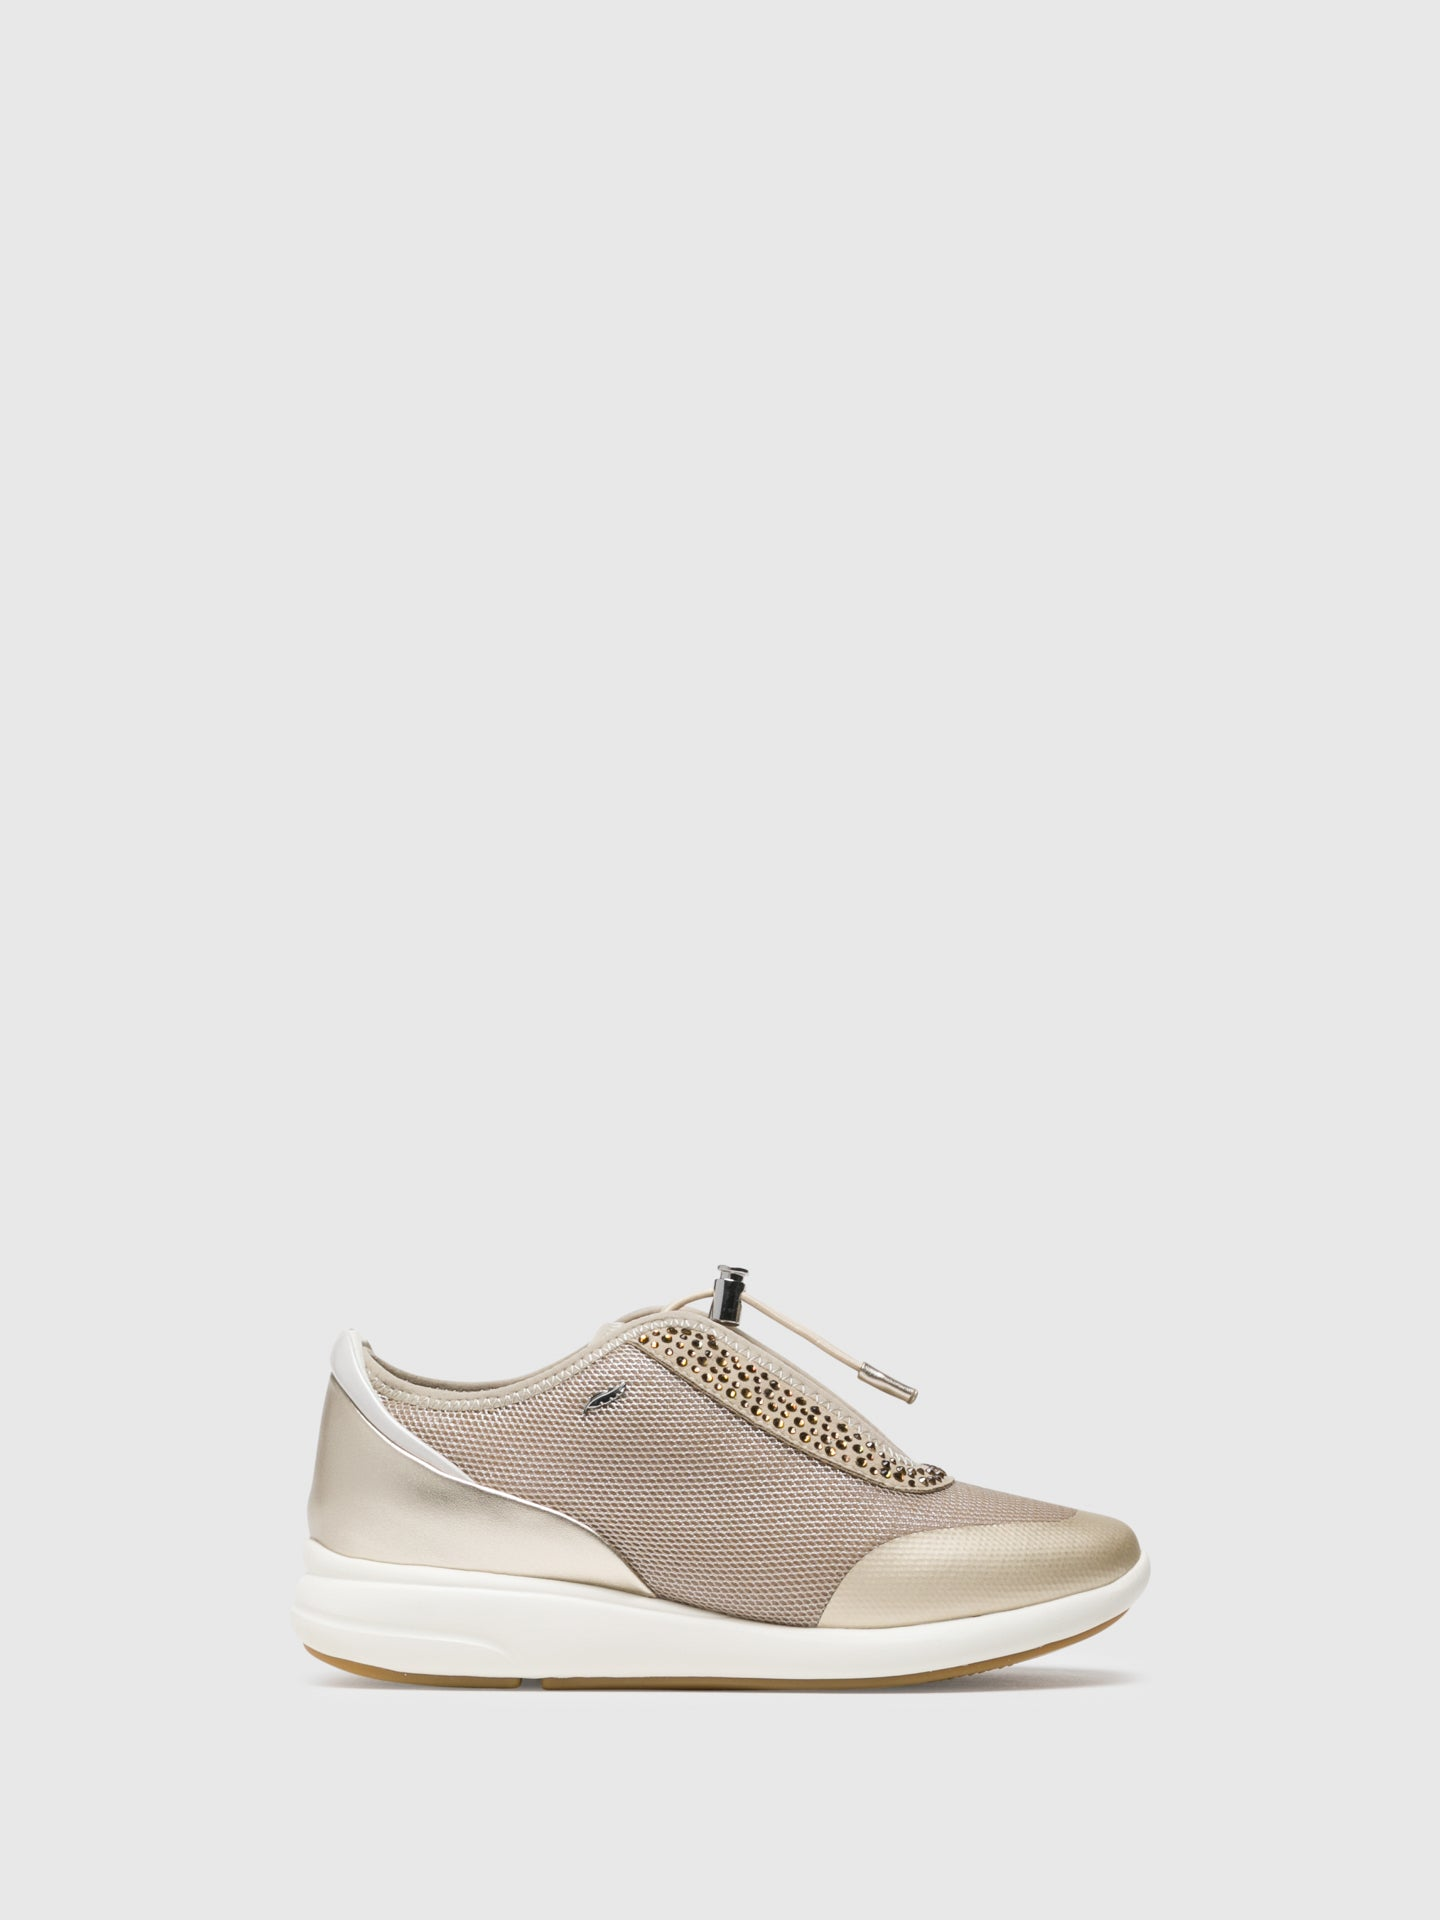 Geox Sneakers mit Applikationen in Taupe